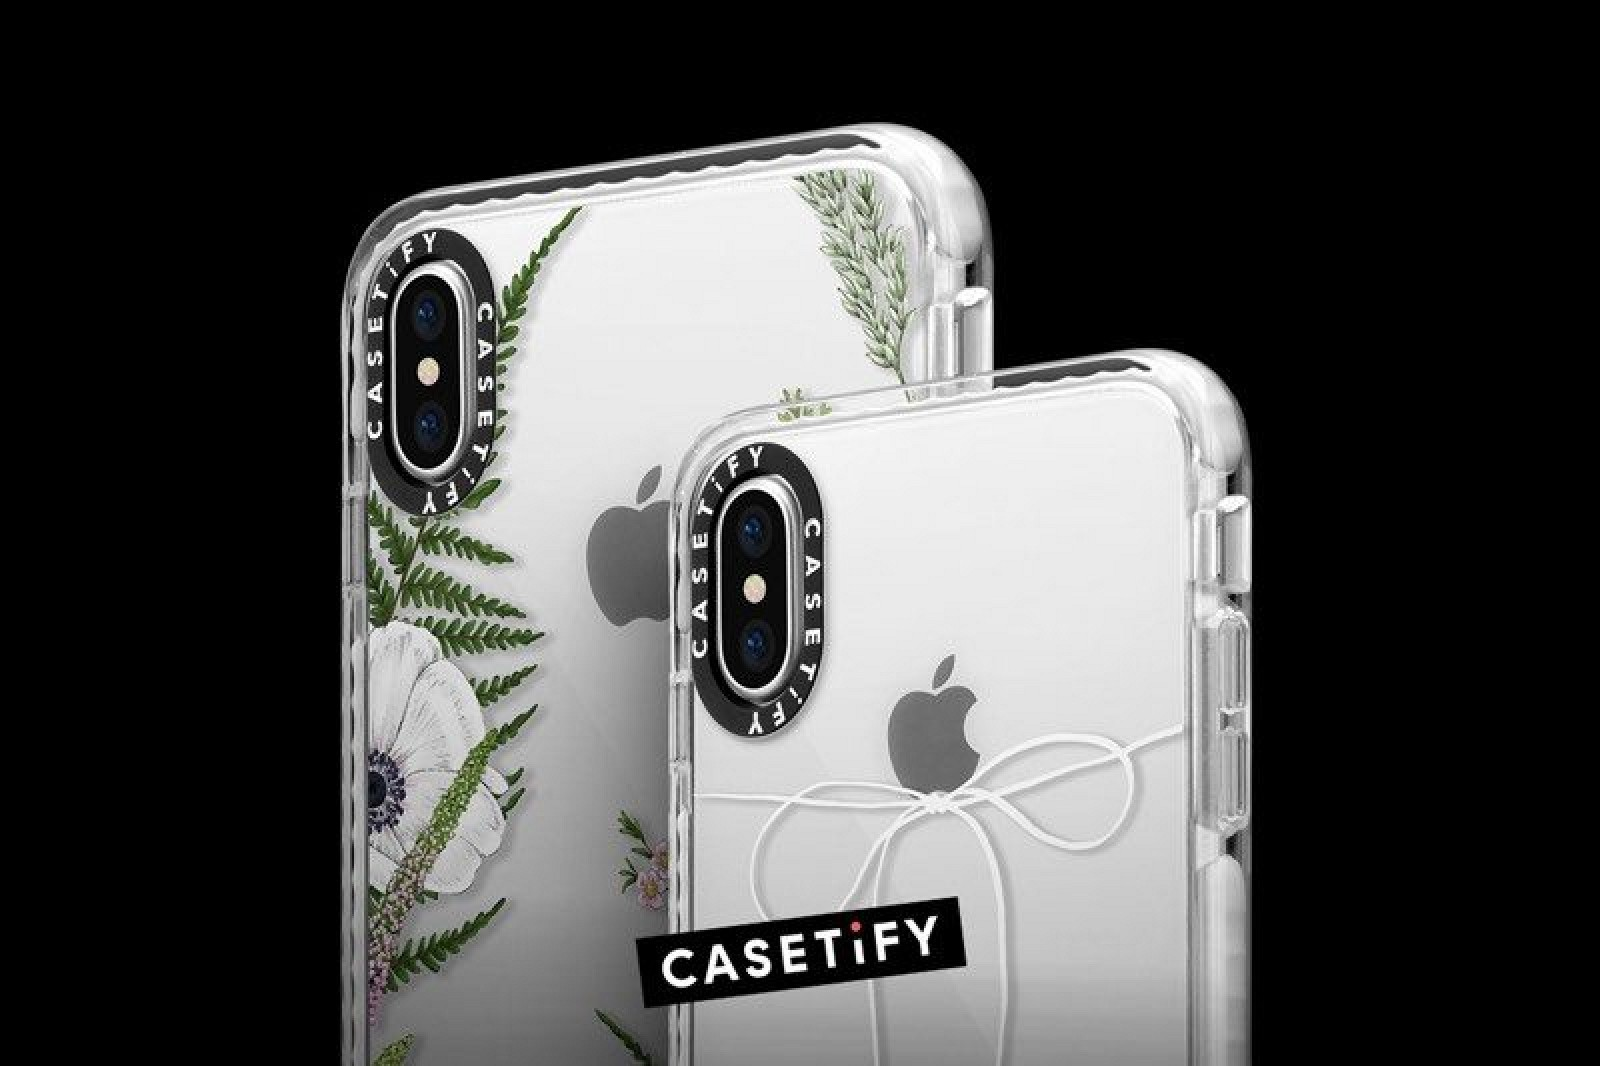 Sweepstake iphone xs max release date in stores